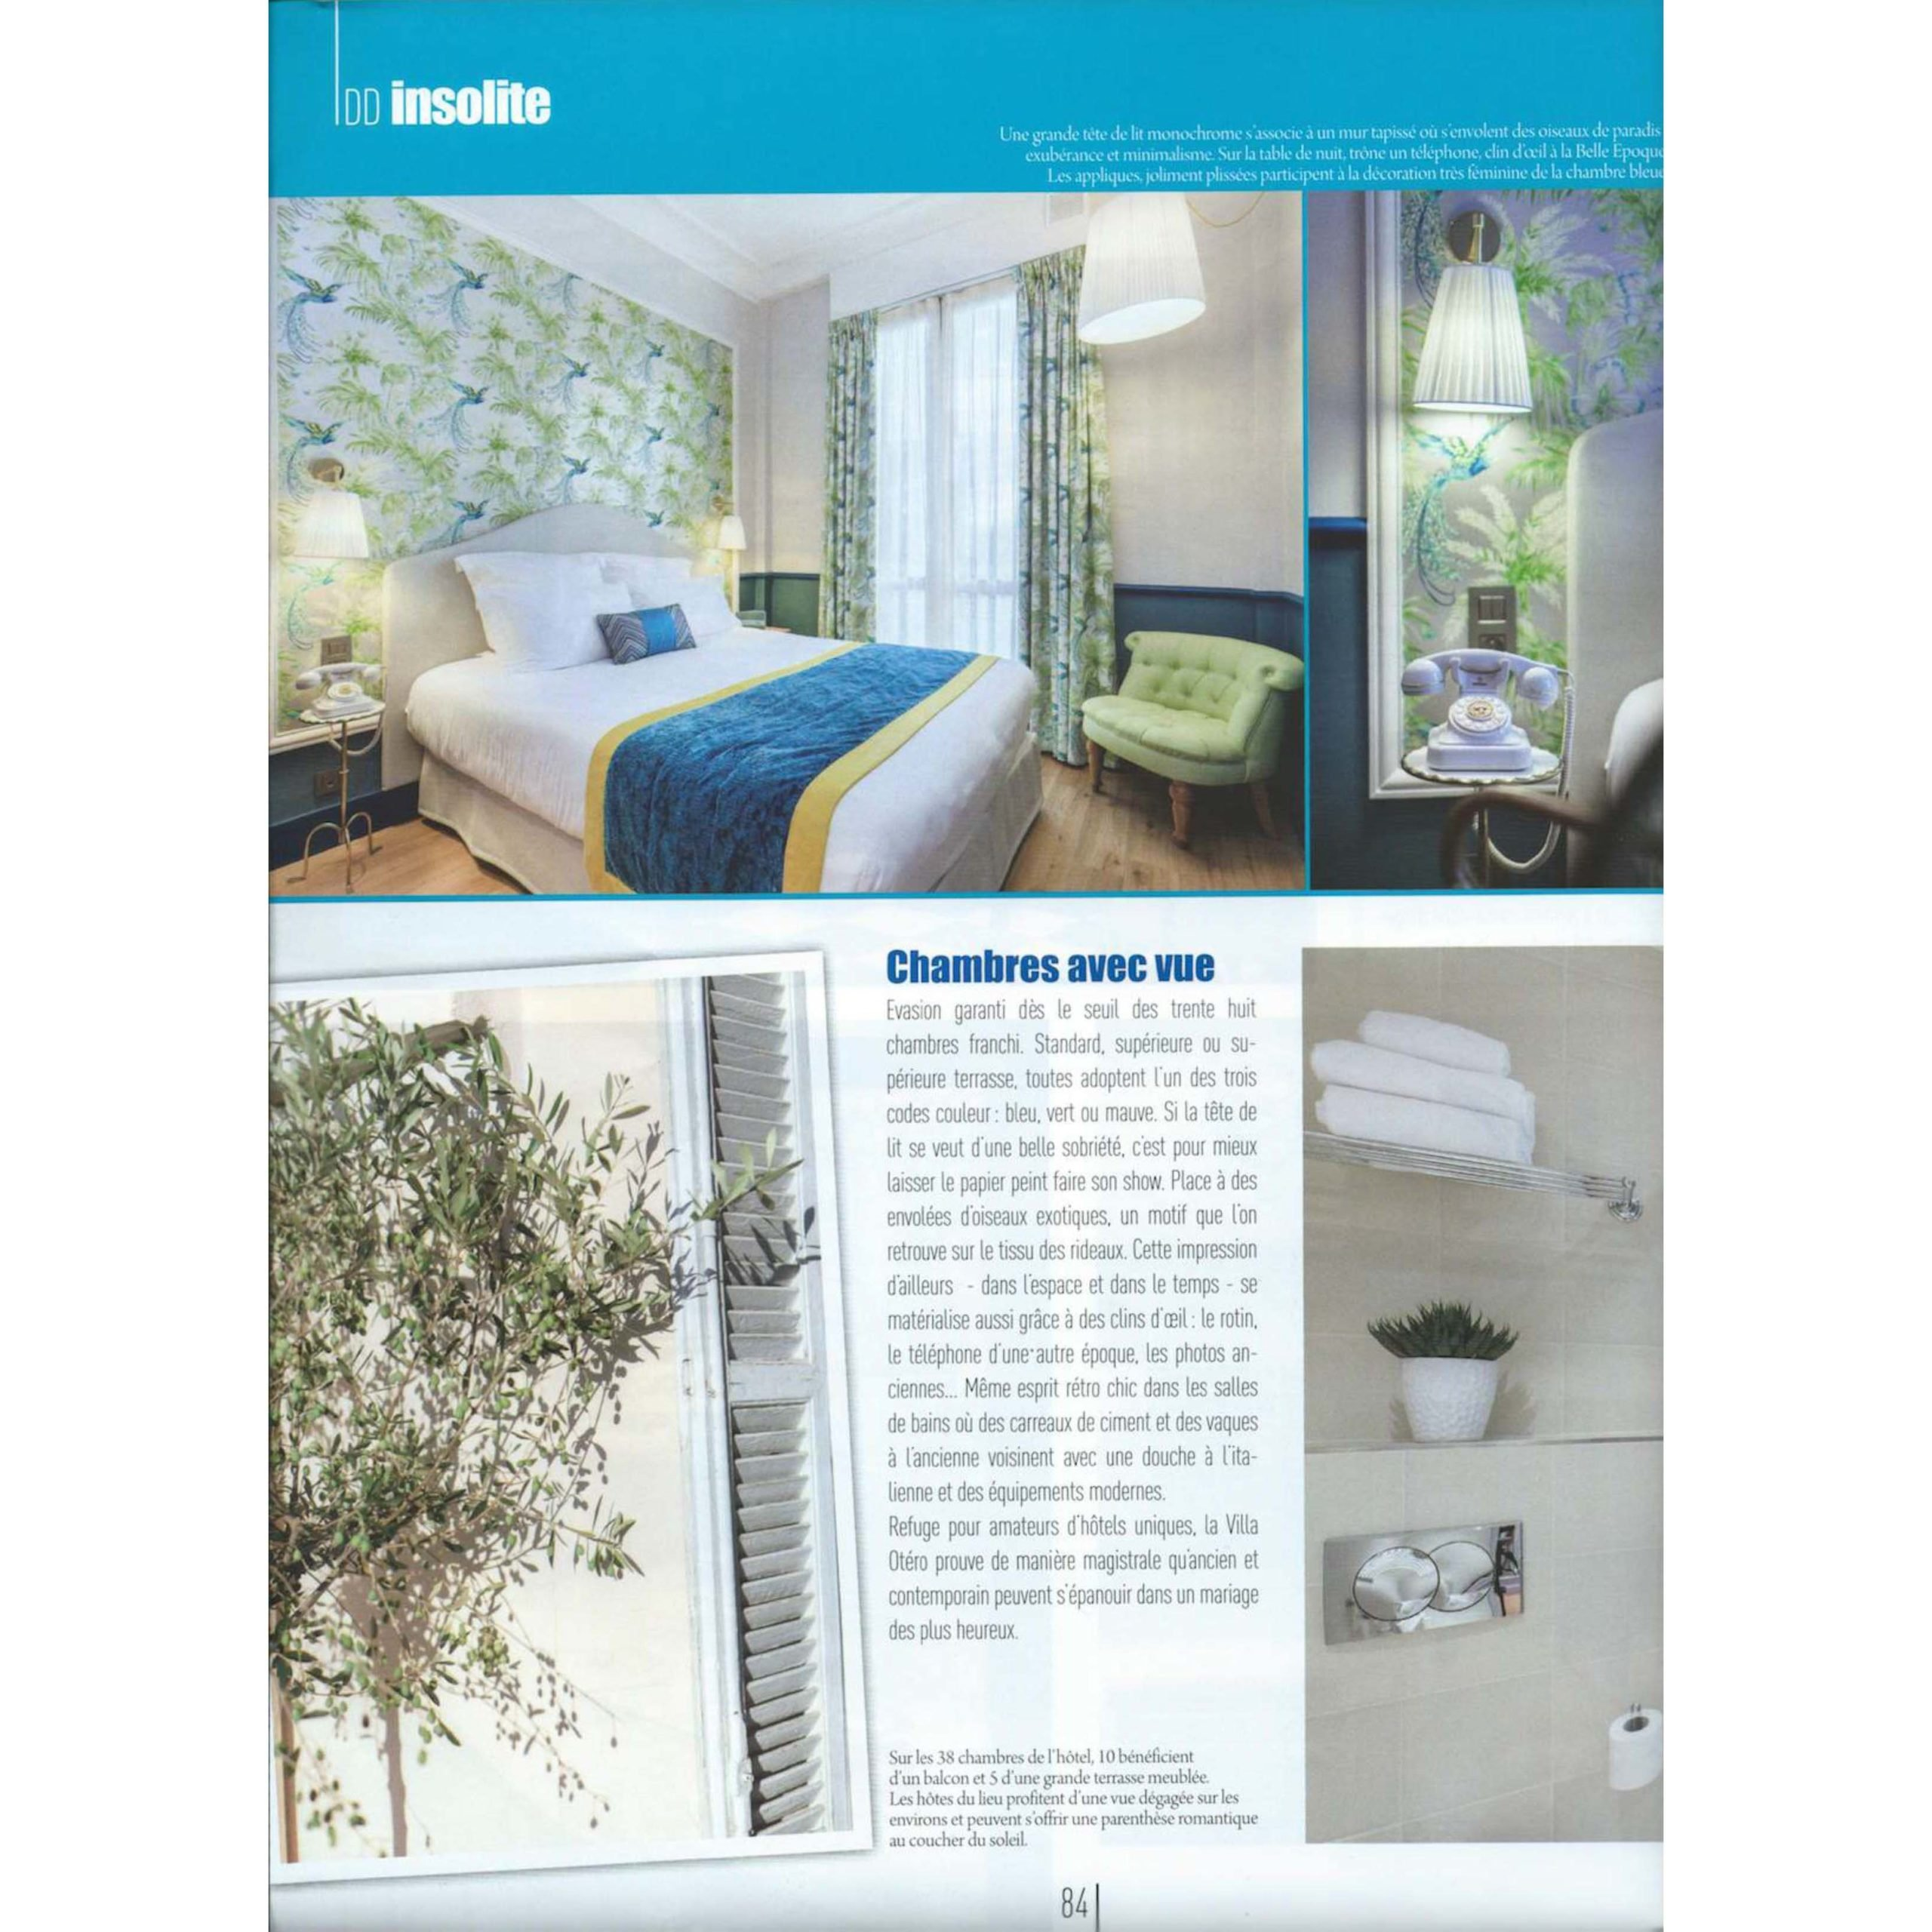 VILLA OTERO Article HOTEL 4 etoiles stephanie cayet architecture interieure design